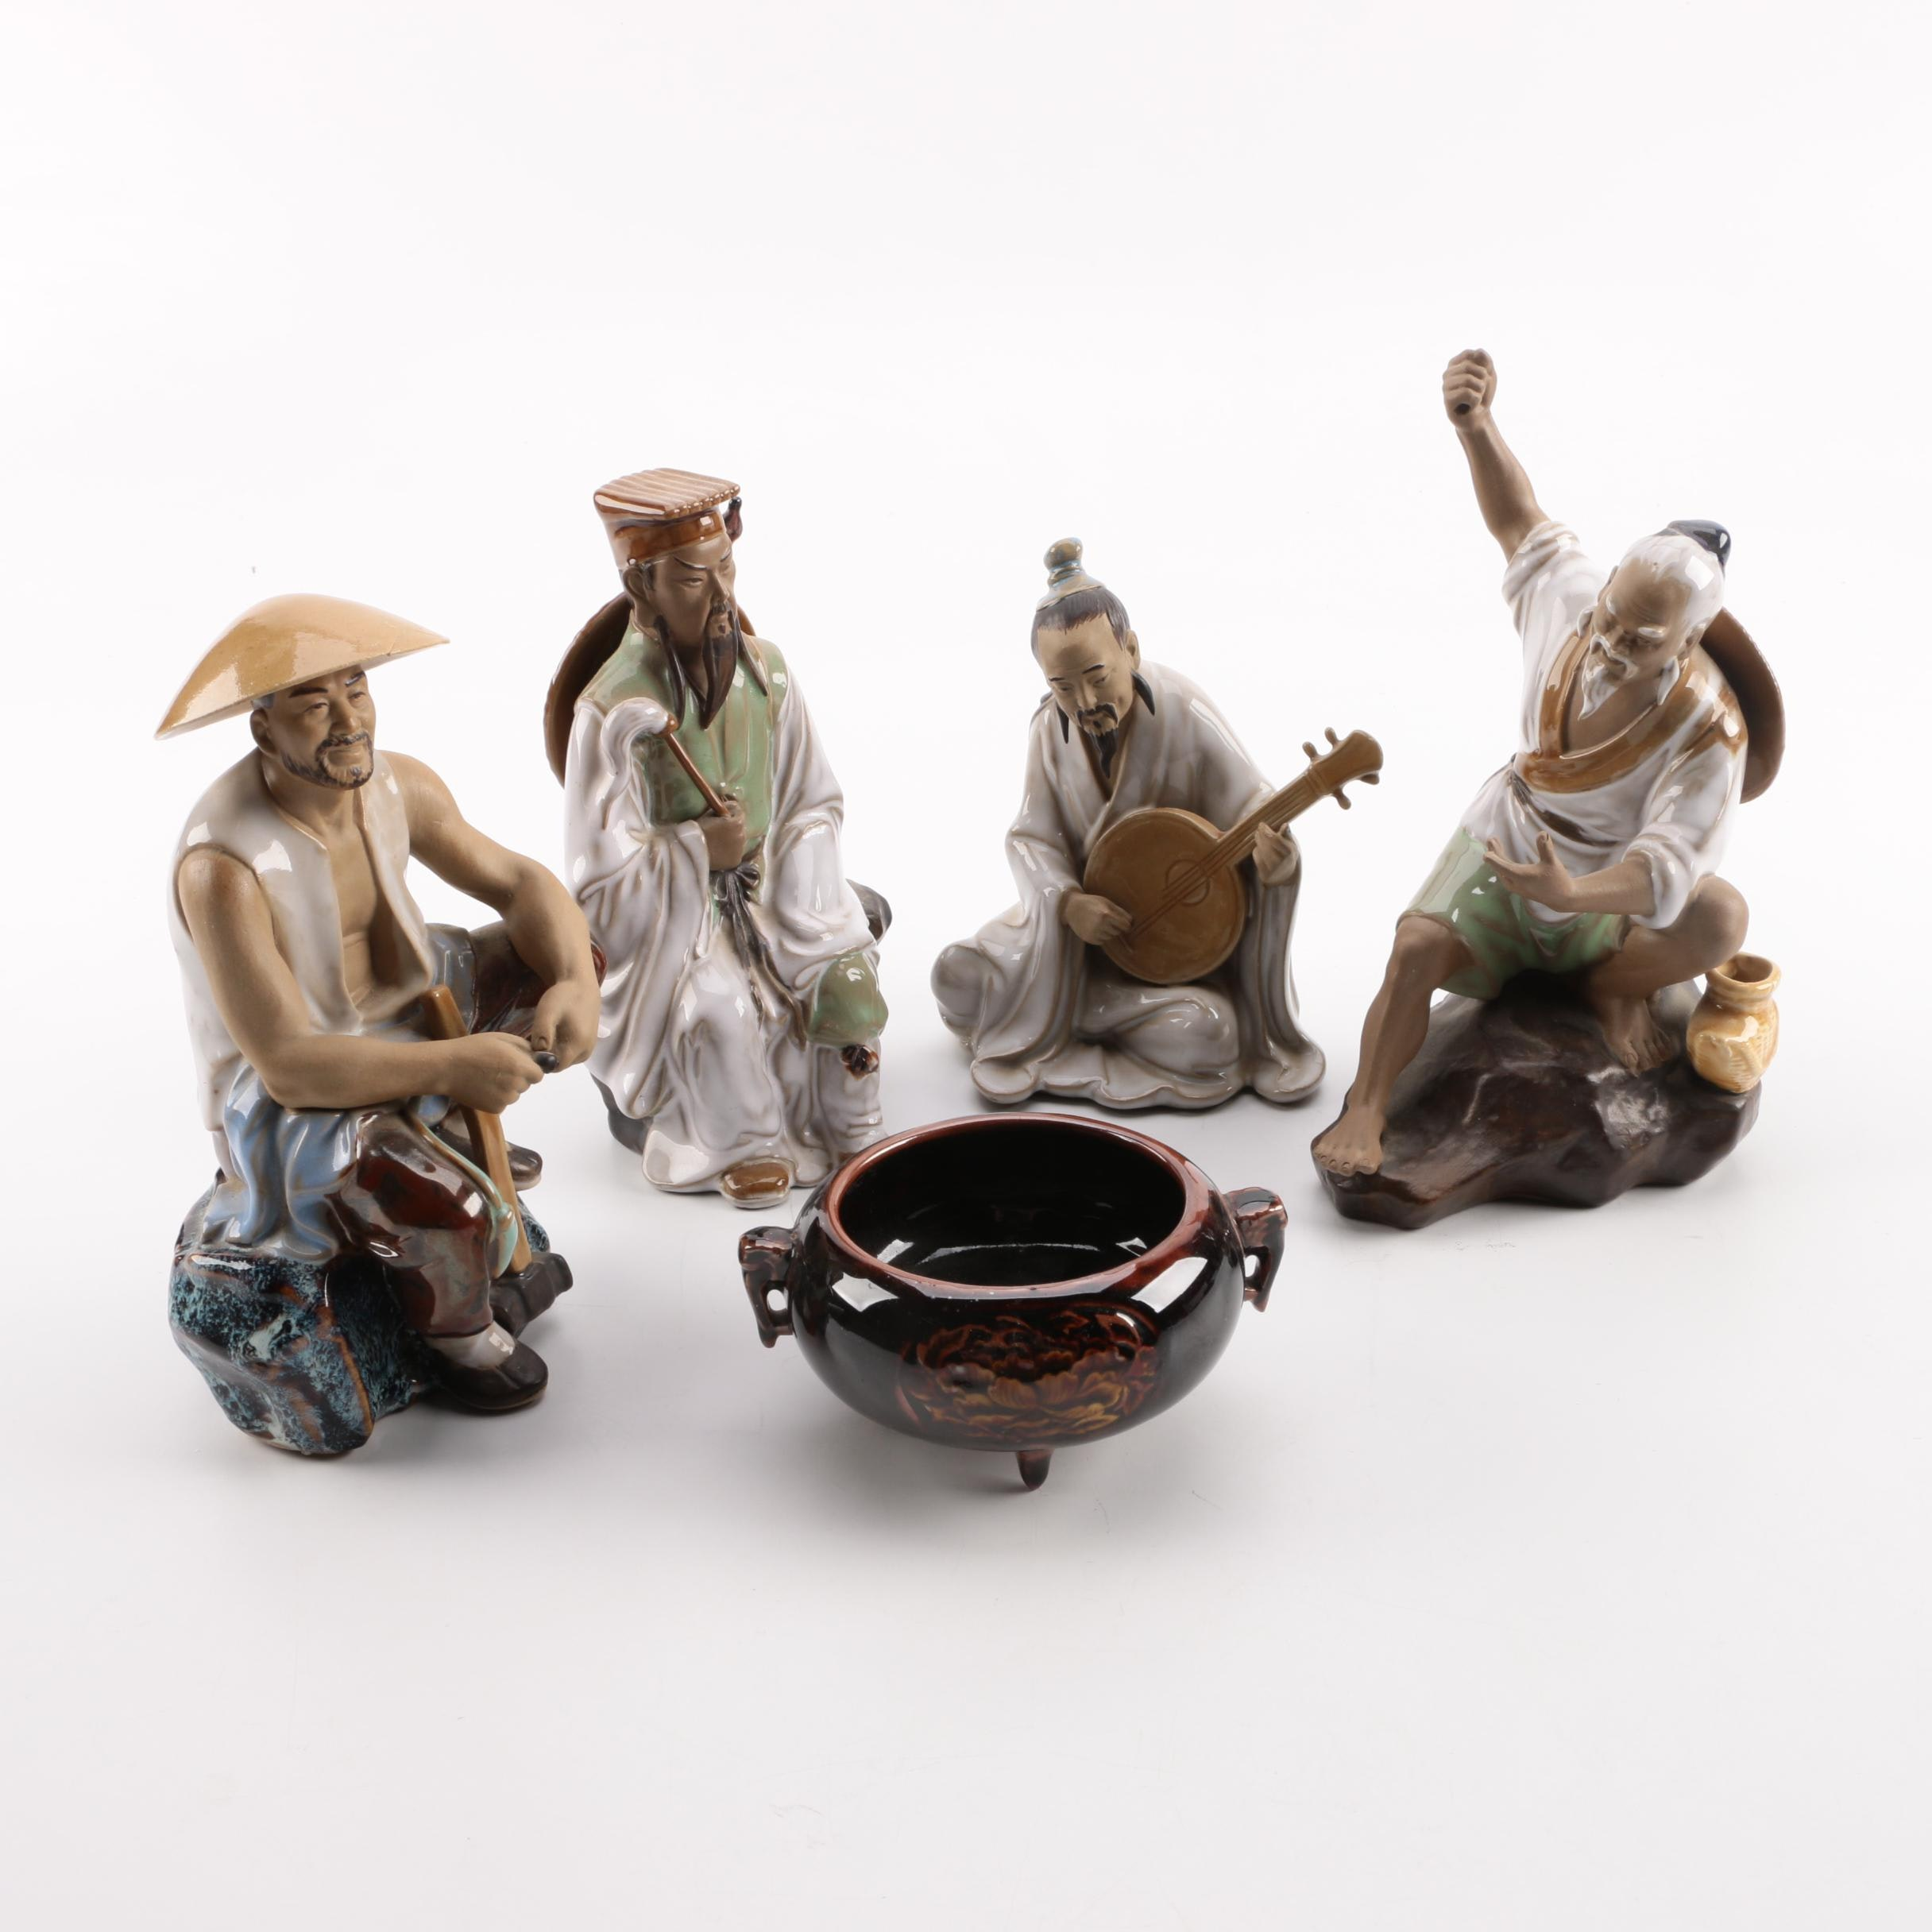 Chinese Mud Man Style Figurines and Vessel